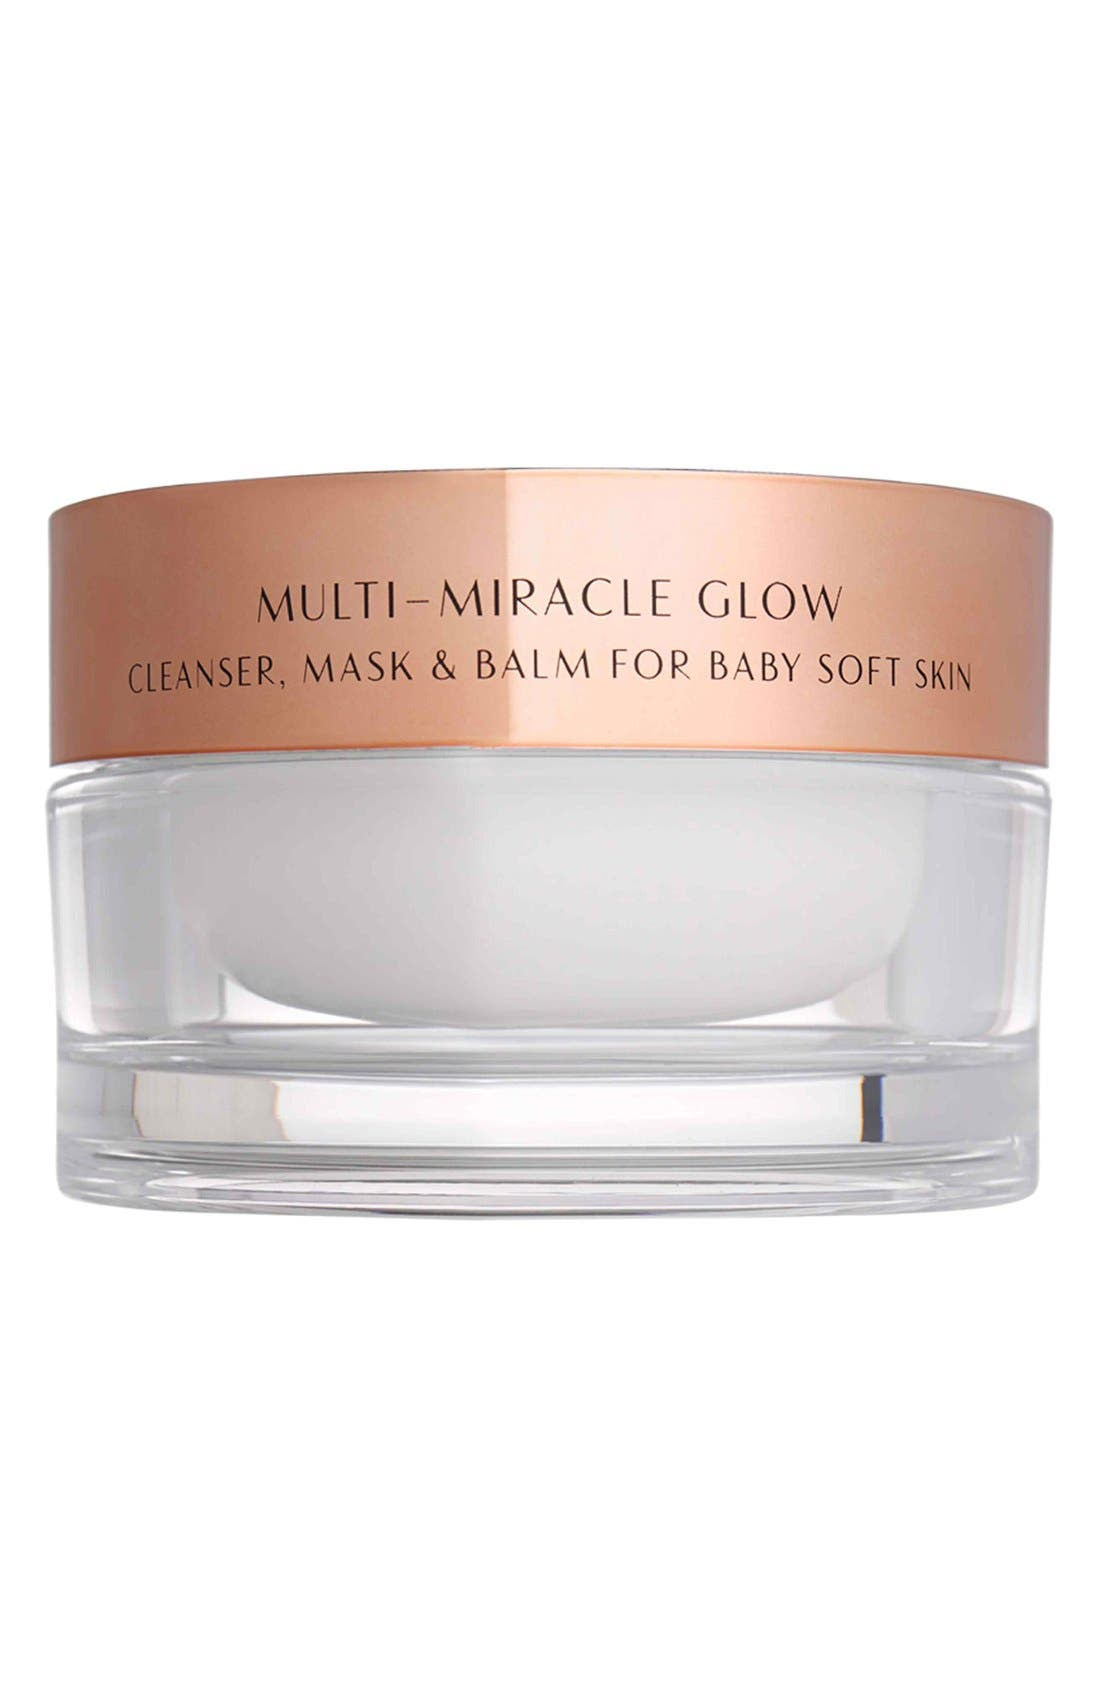 CHARLOTTE TILBURY, Multi-Miracle Glow Cleansing Balm, Main thumbnail 1, color, NO COLOR